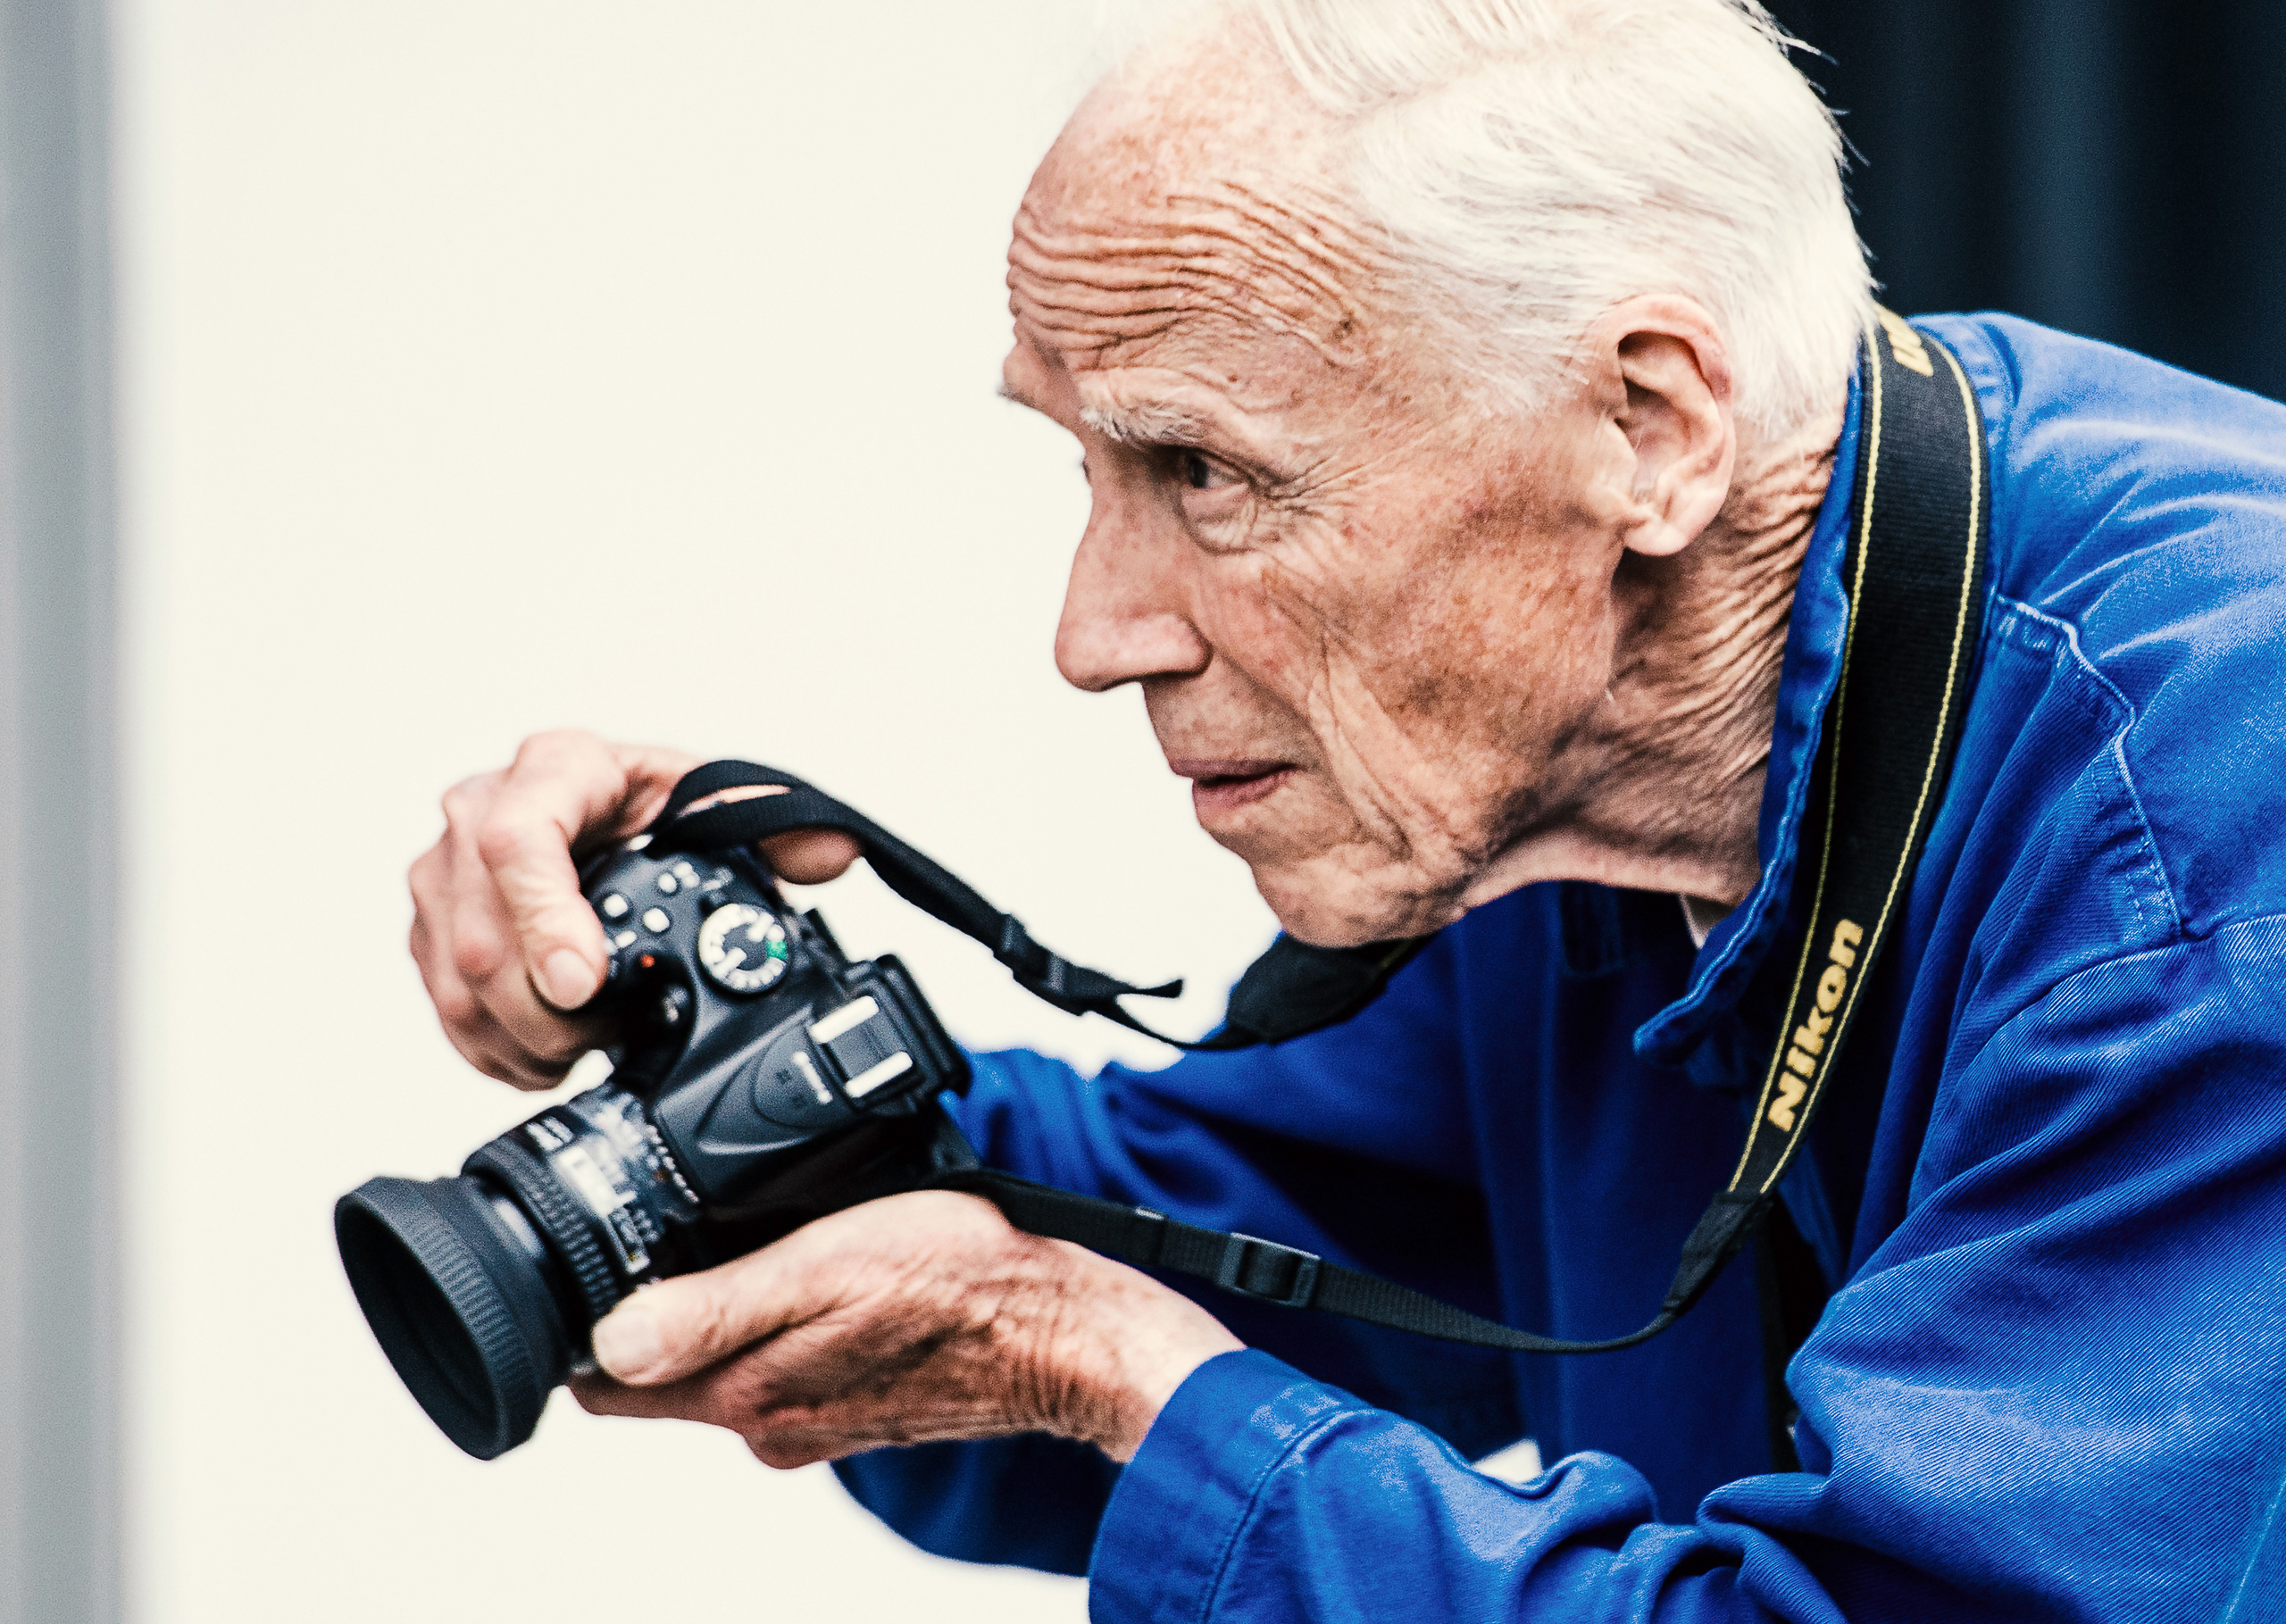 Photographer Bill Cunningham is seen outside Skylight Clarkson Sq during New York Fashion Week: Men's S/S 2016 in New York City on July 15, 2015.